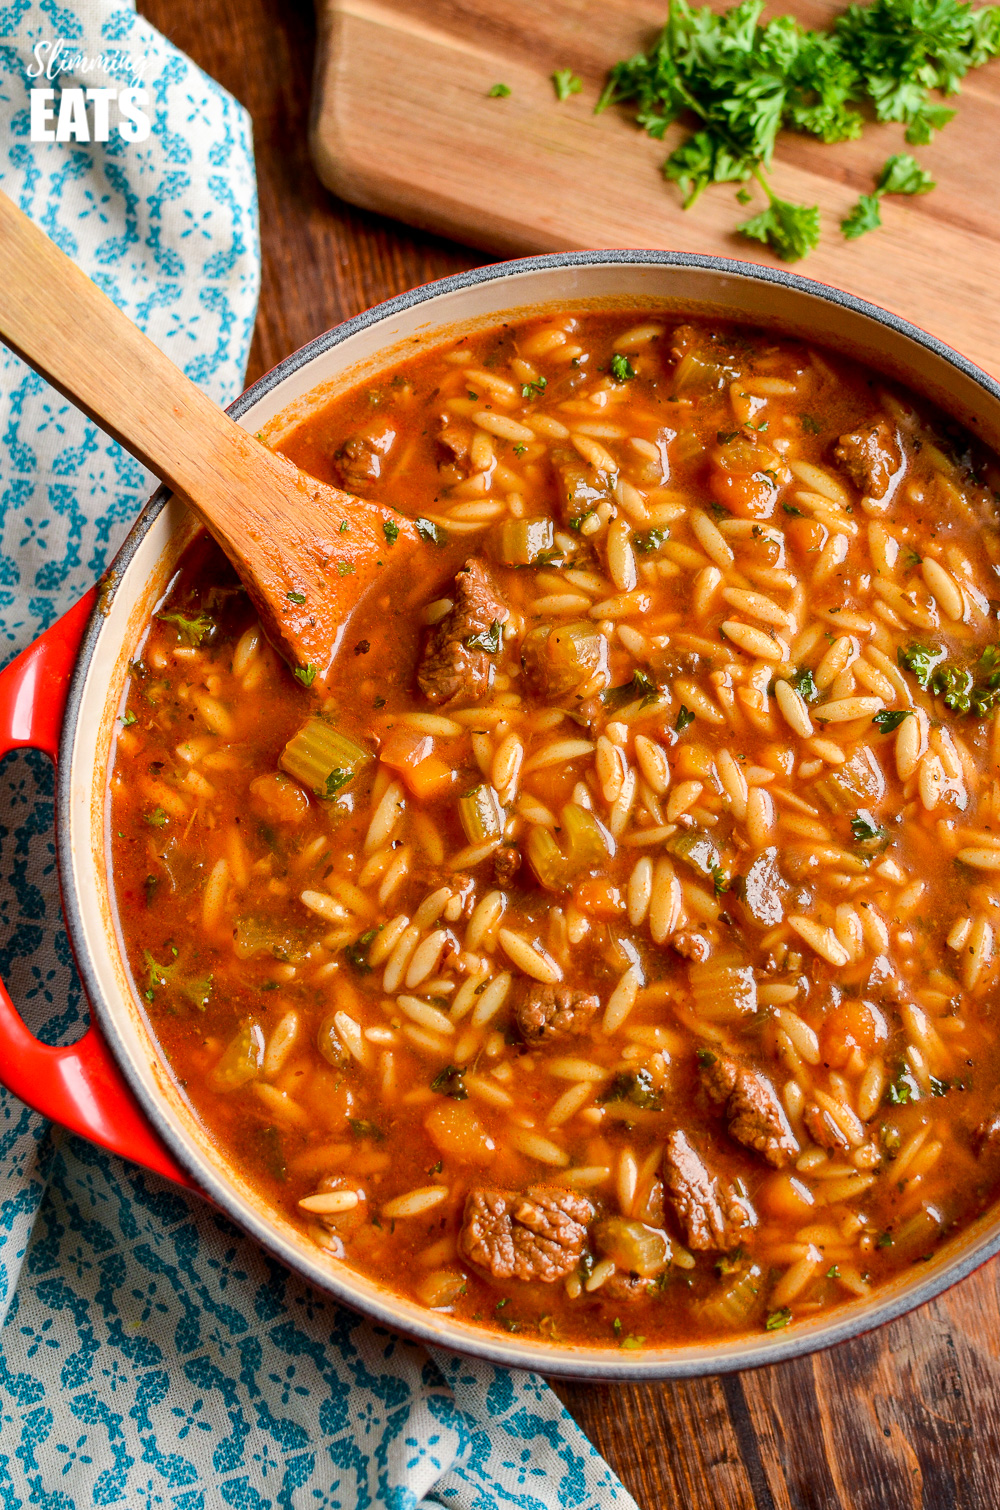 beef celery orzo stew in red dutch oven pot with wooden spoon